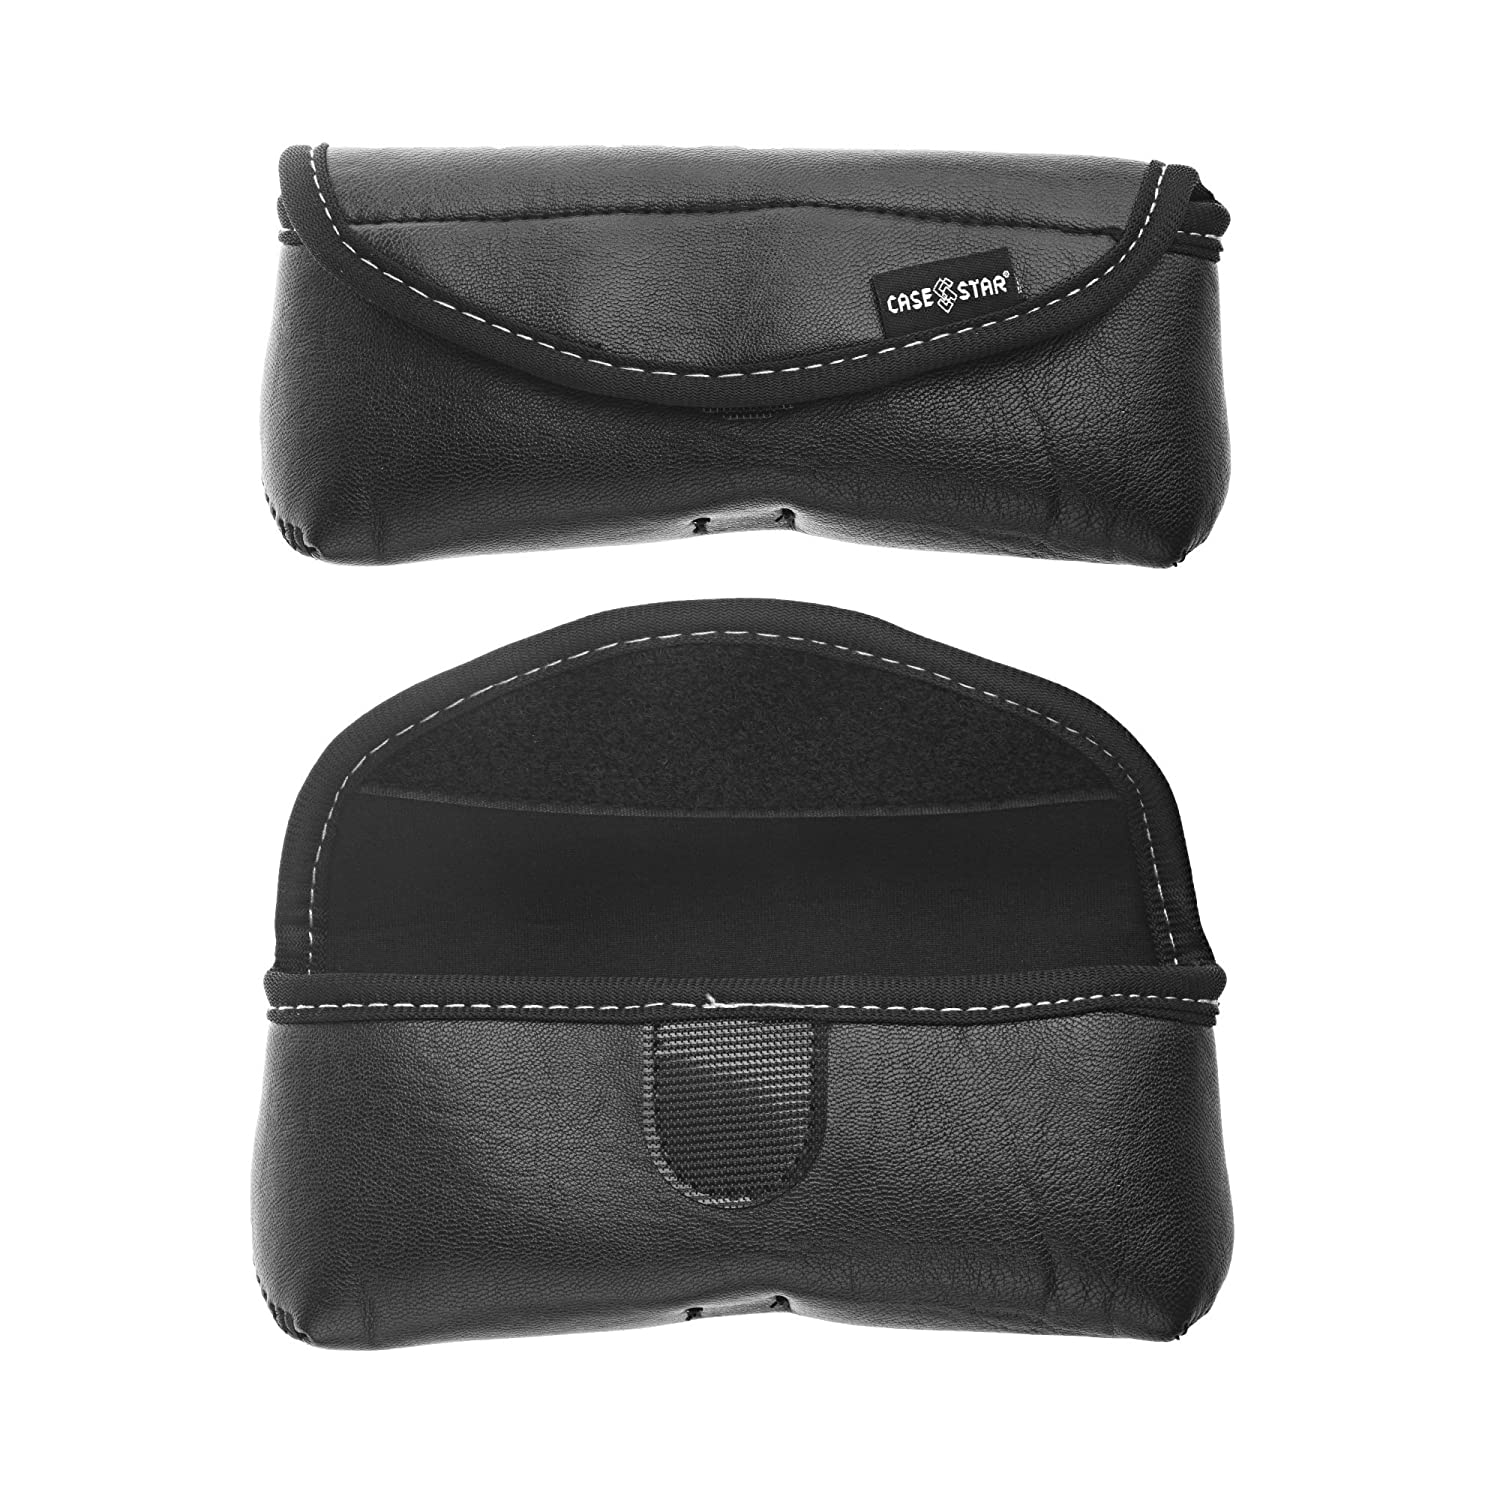 Case Star Black PU Leather Glasses Pouch Case For Sunglasses Reading Eyeglasses Eyewear